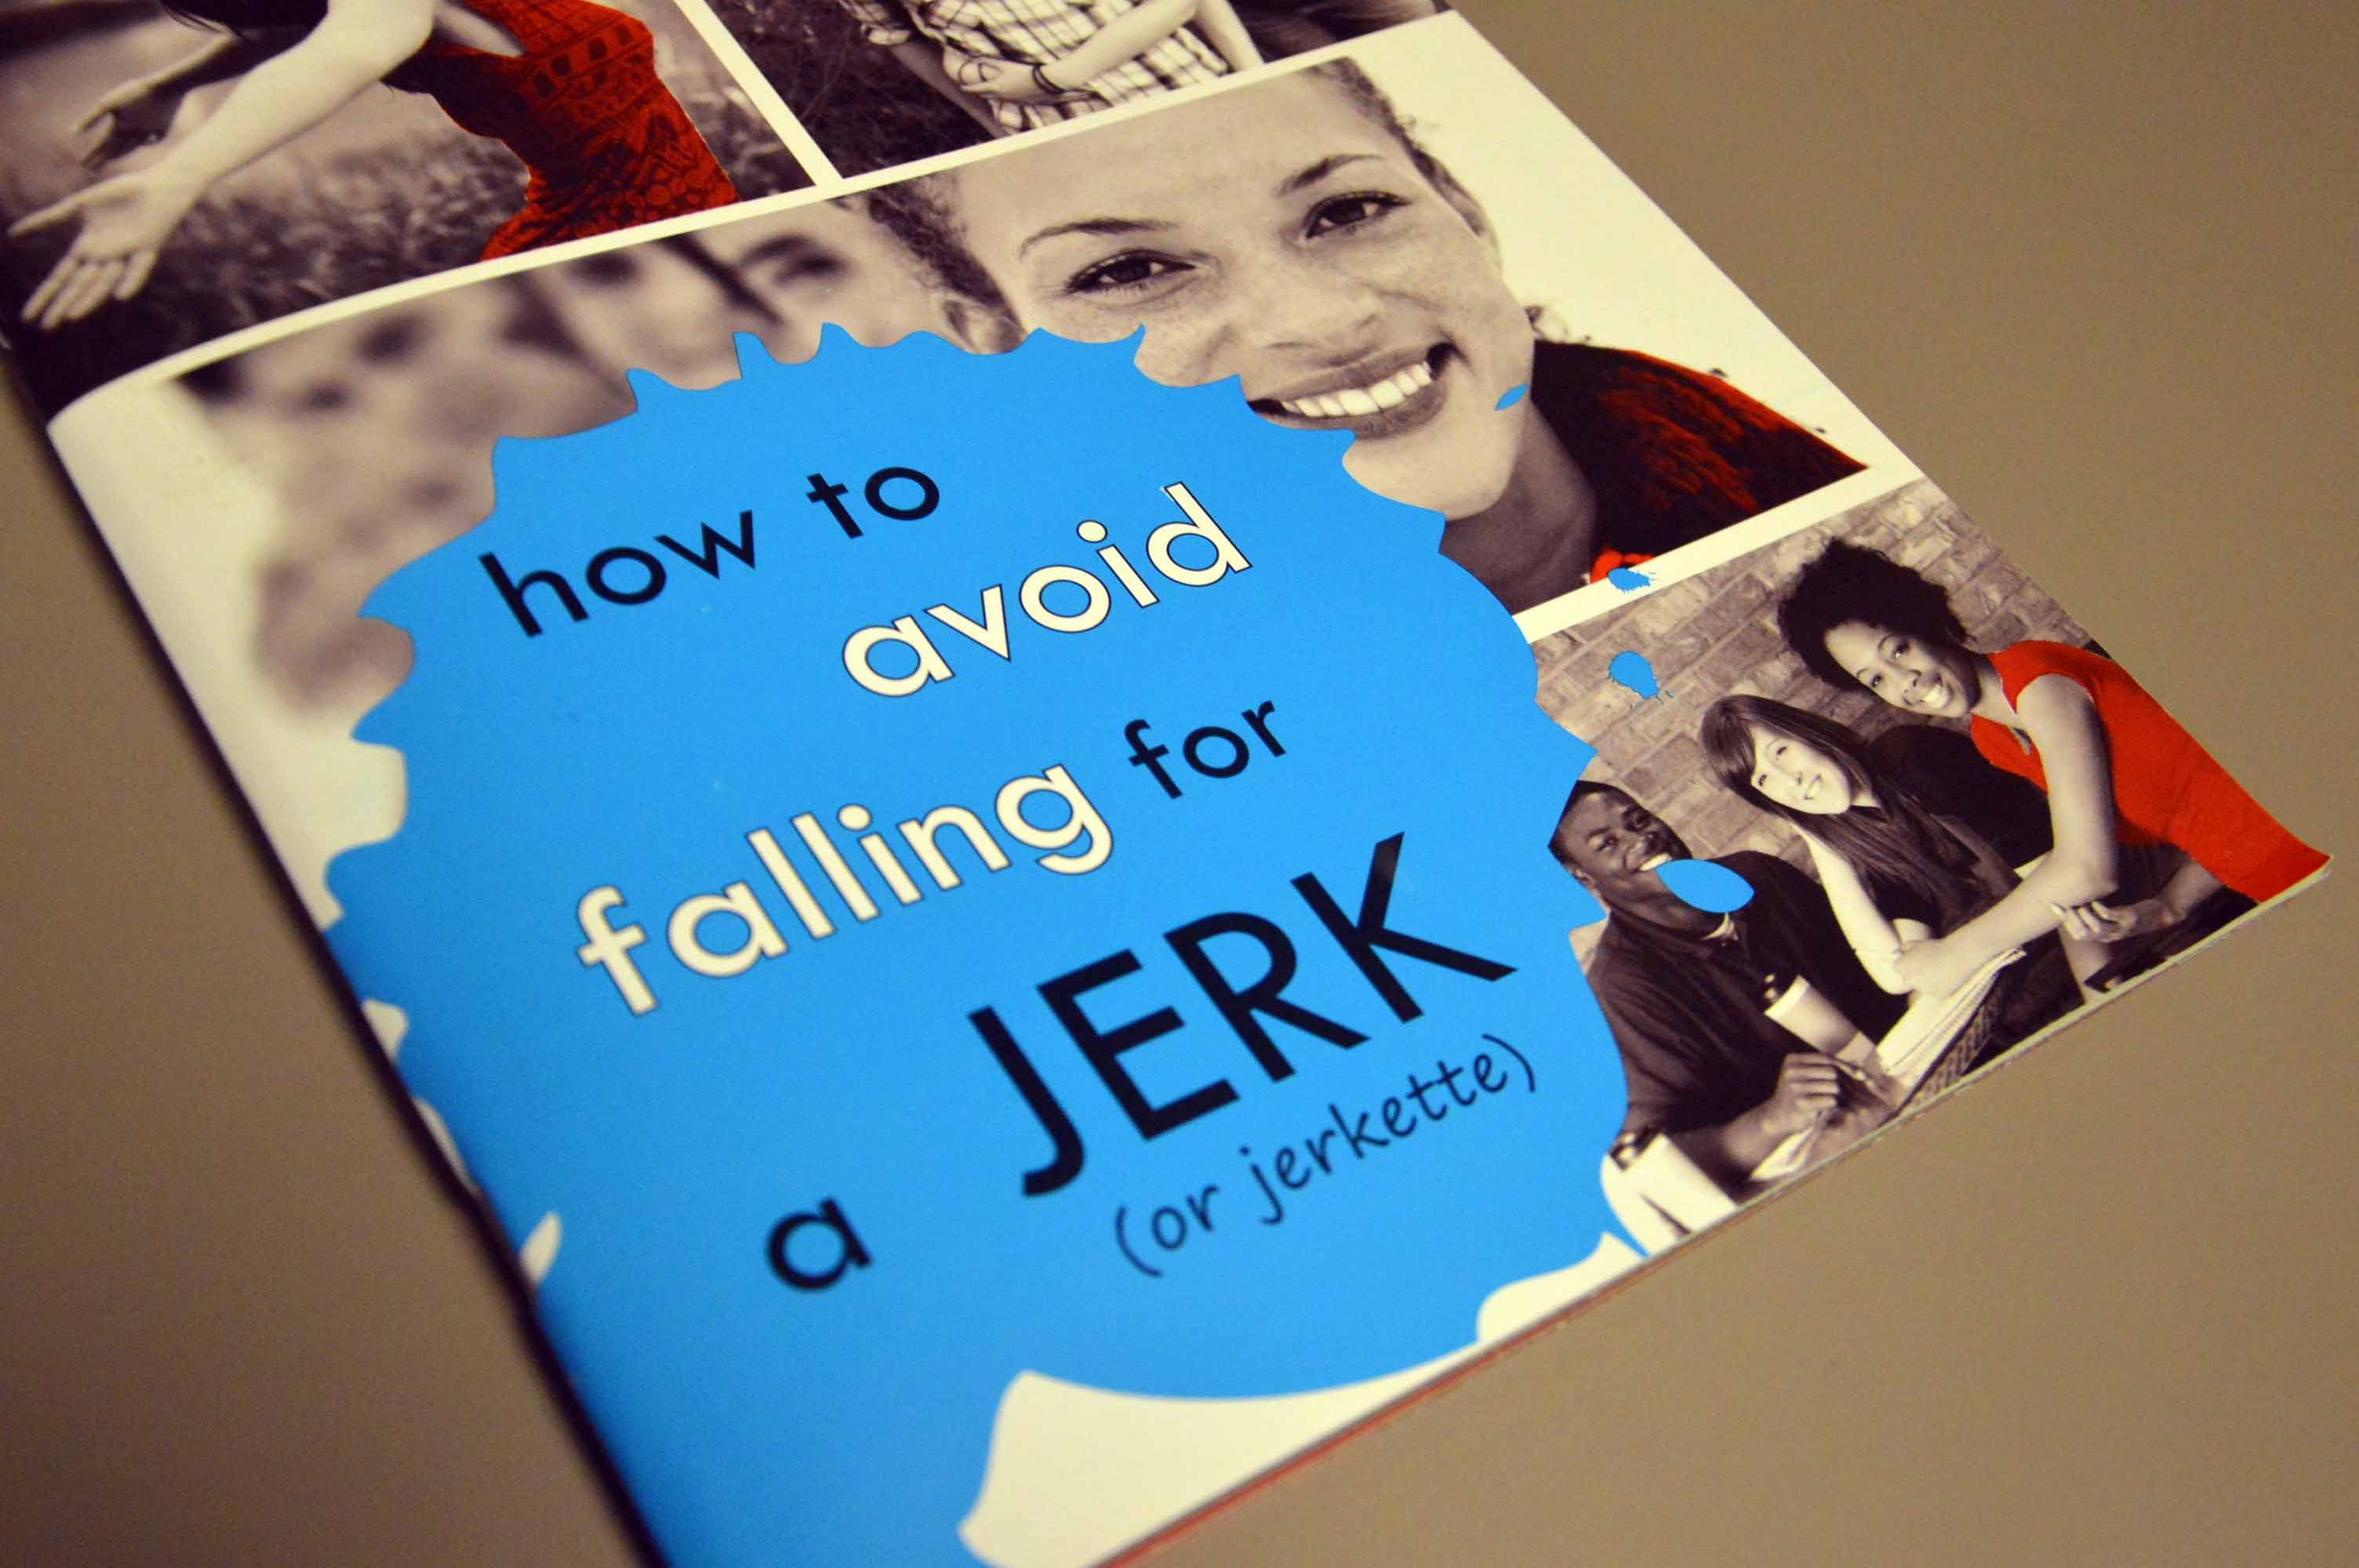 How to avoid dating a jerk or jerkette